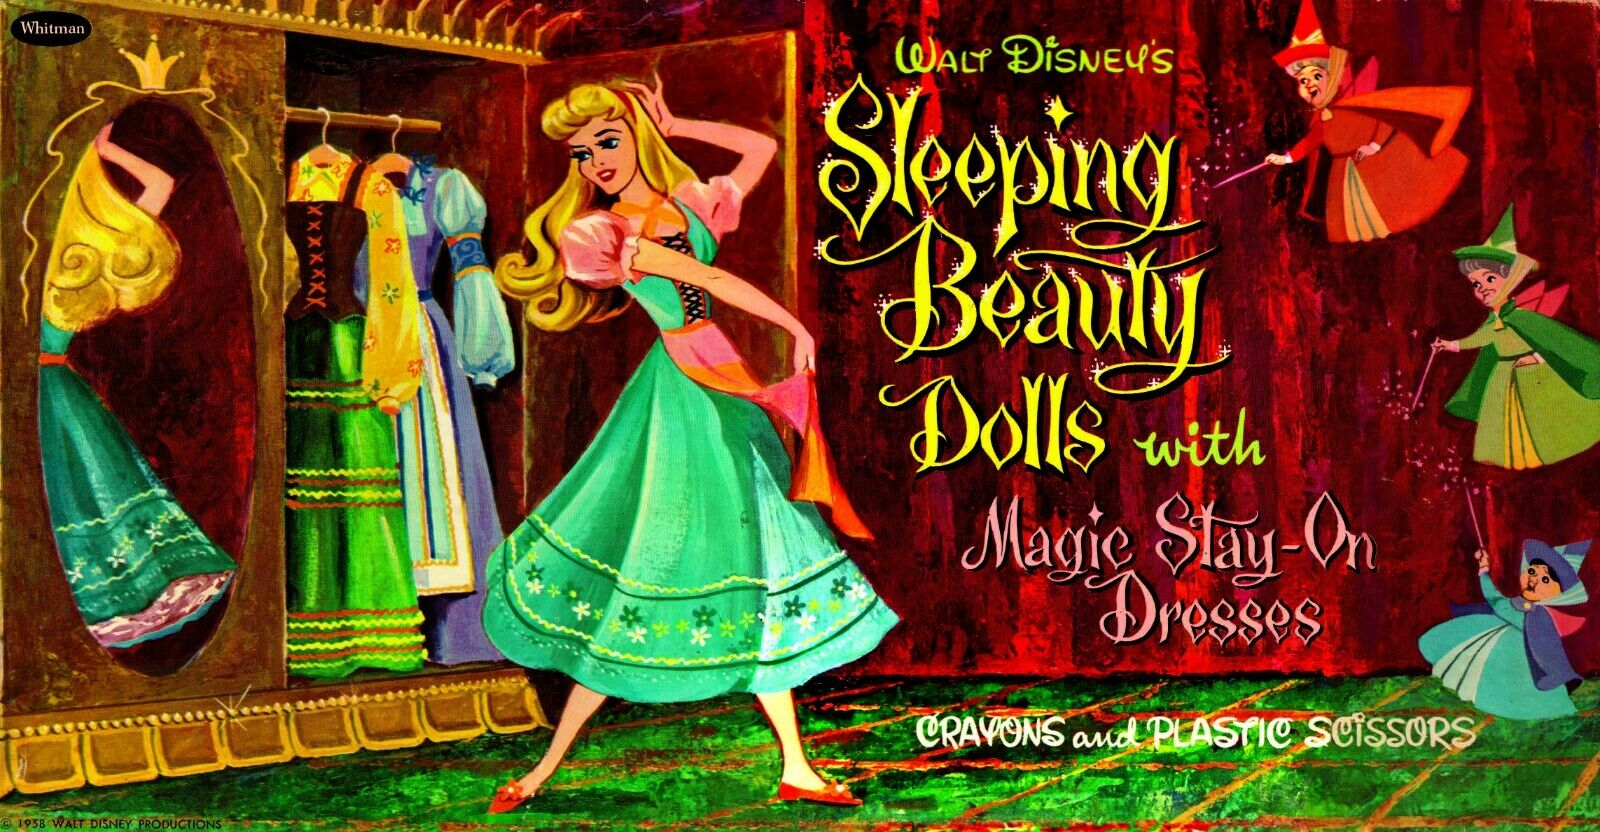 VINTAGE REPRINT - 1958 - SLEEPING BEAUTY PAPER DOLLS - RARE & HTF REPRODUCTION